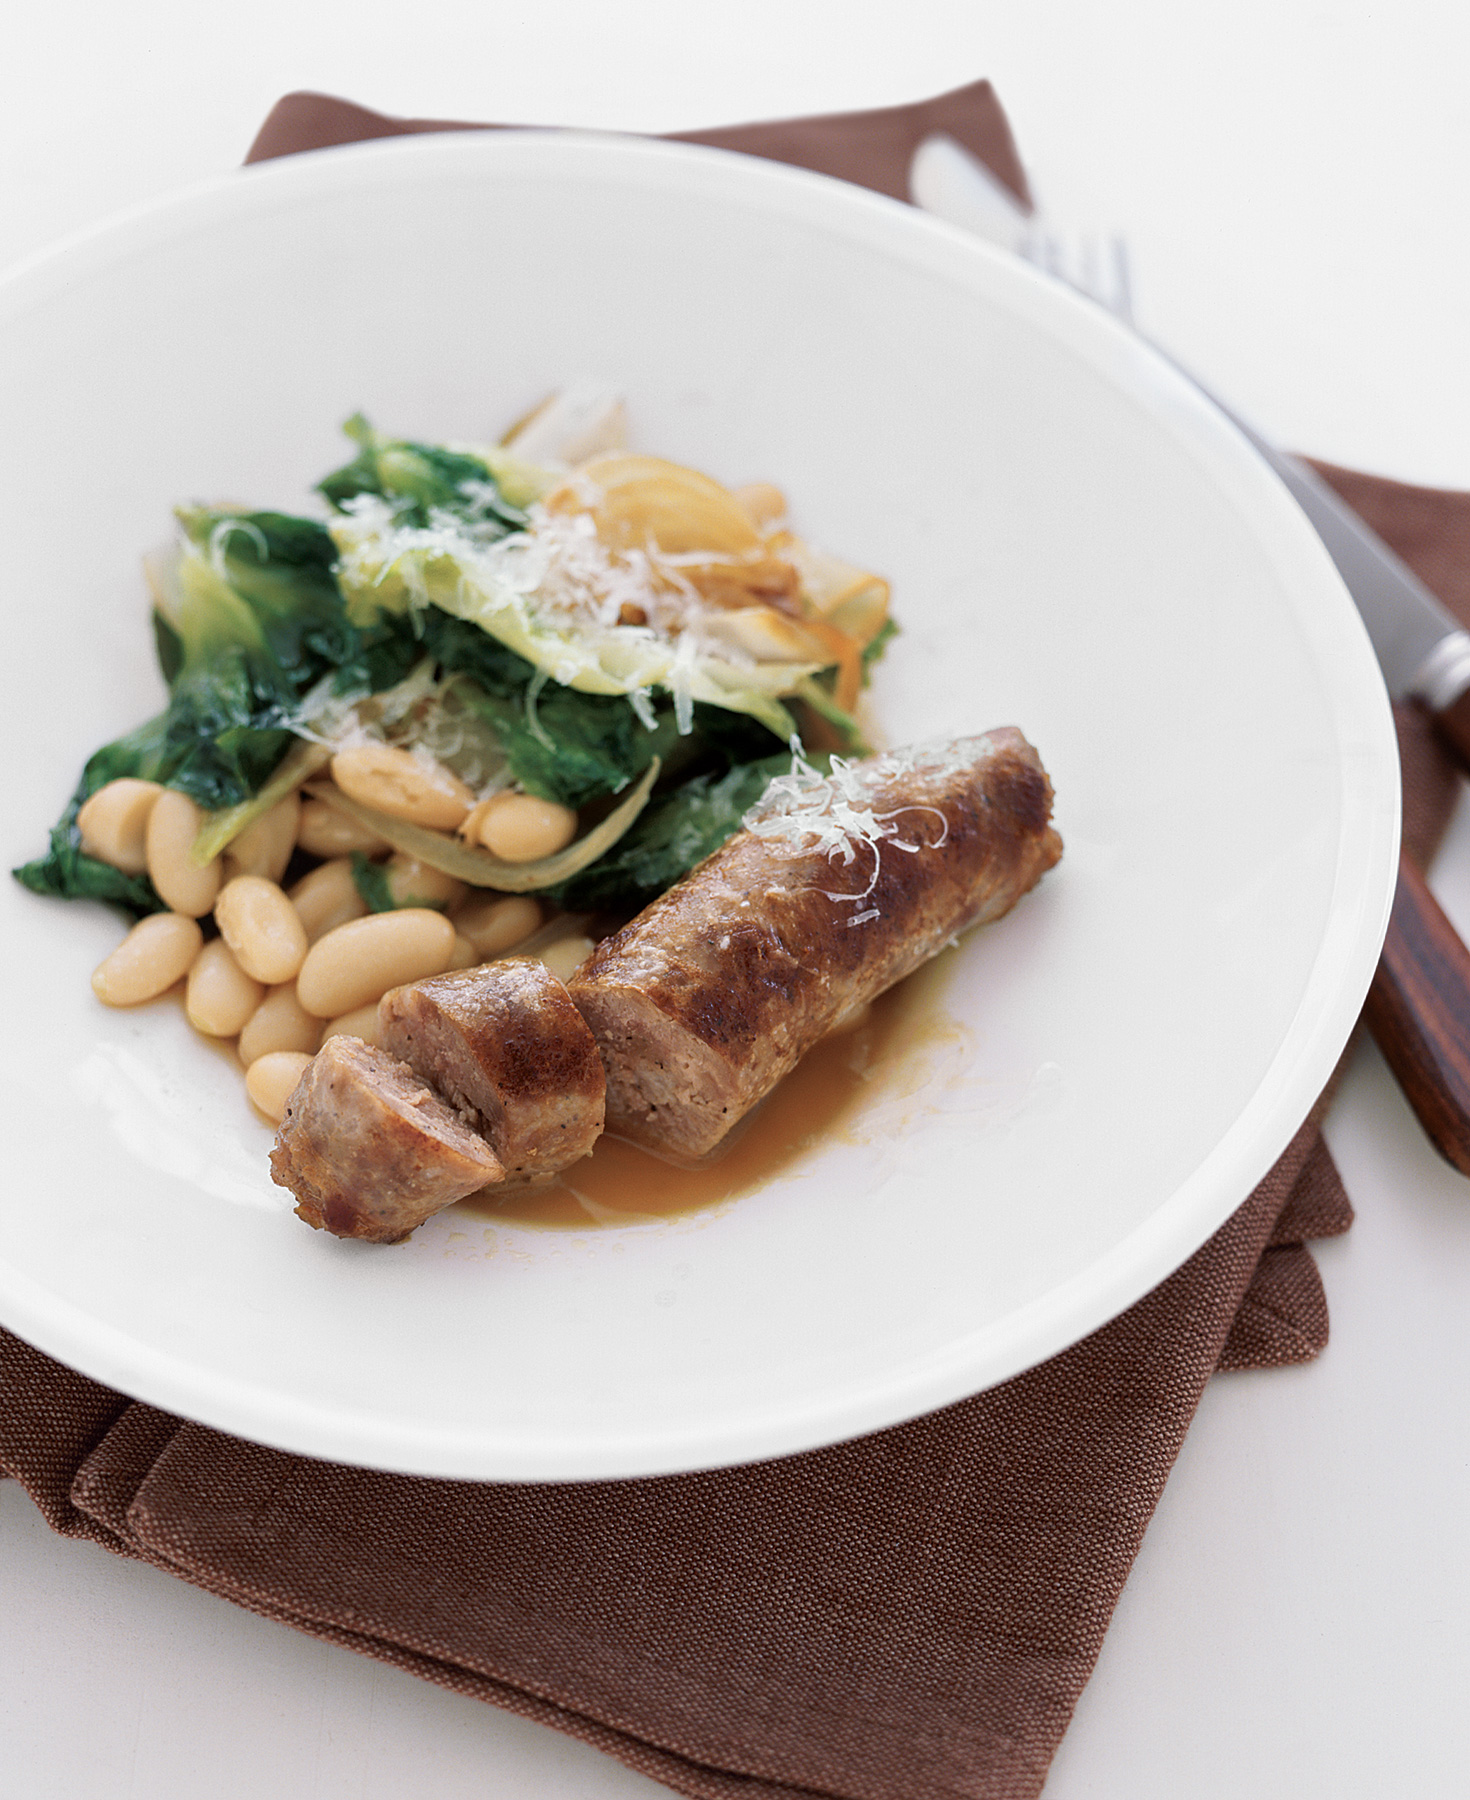 Sausage With Escarole and White Beans